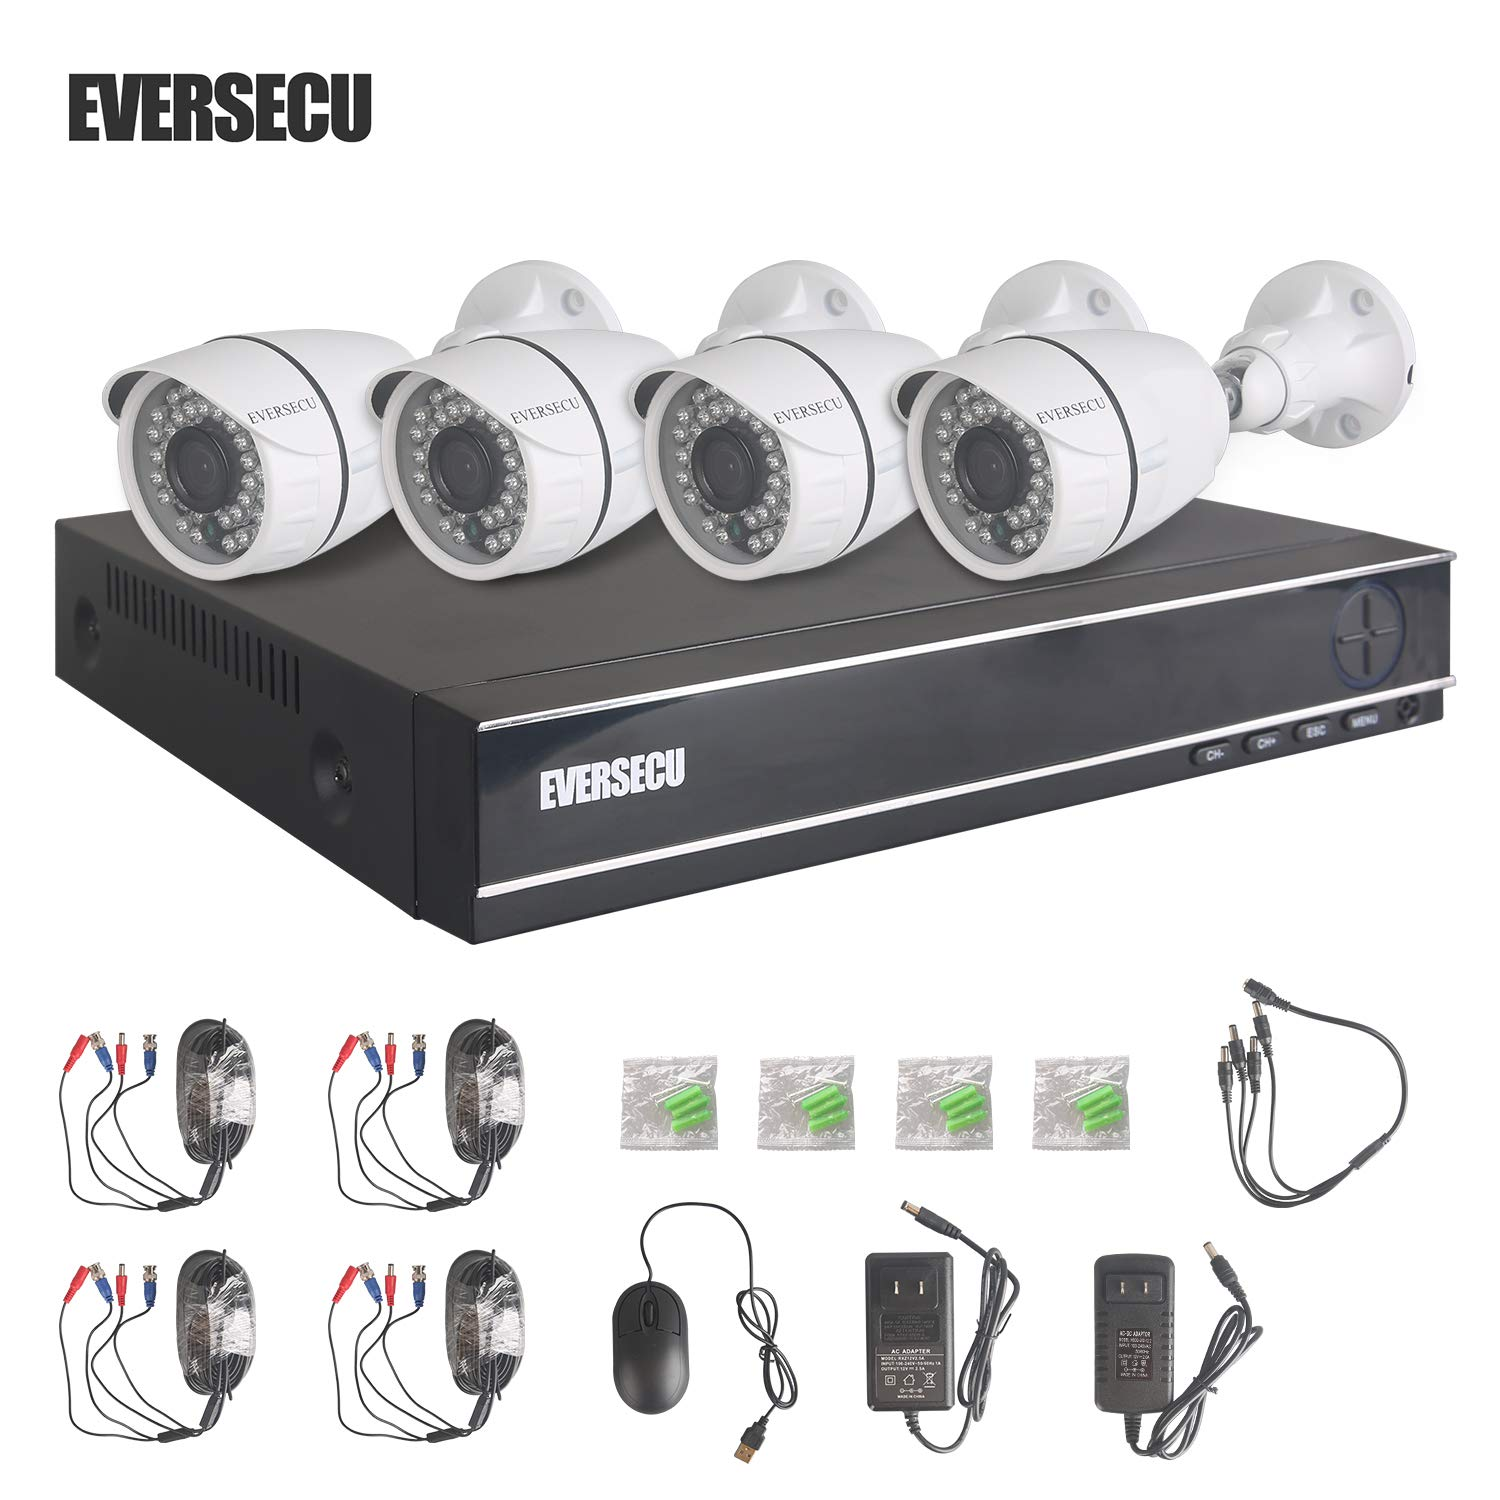 Eversecu 4 Channel Security Camera System 1080N DVR and (4) 1.0MP 720P Weatherproof Cameras Support Night Vison Weatherproof, Motion Alert, Smartphone, PC Easy Remote Access (NO HDD Included) by EVERSECU